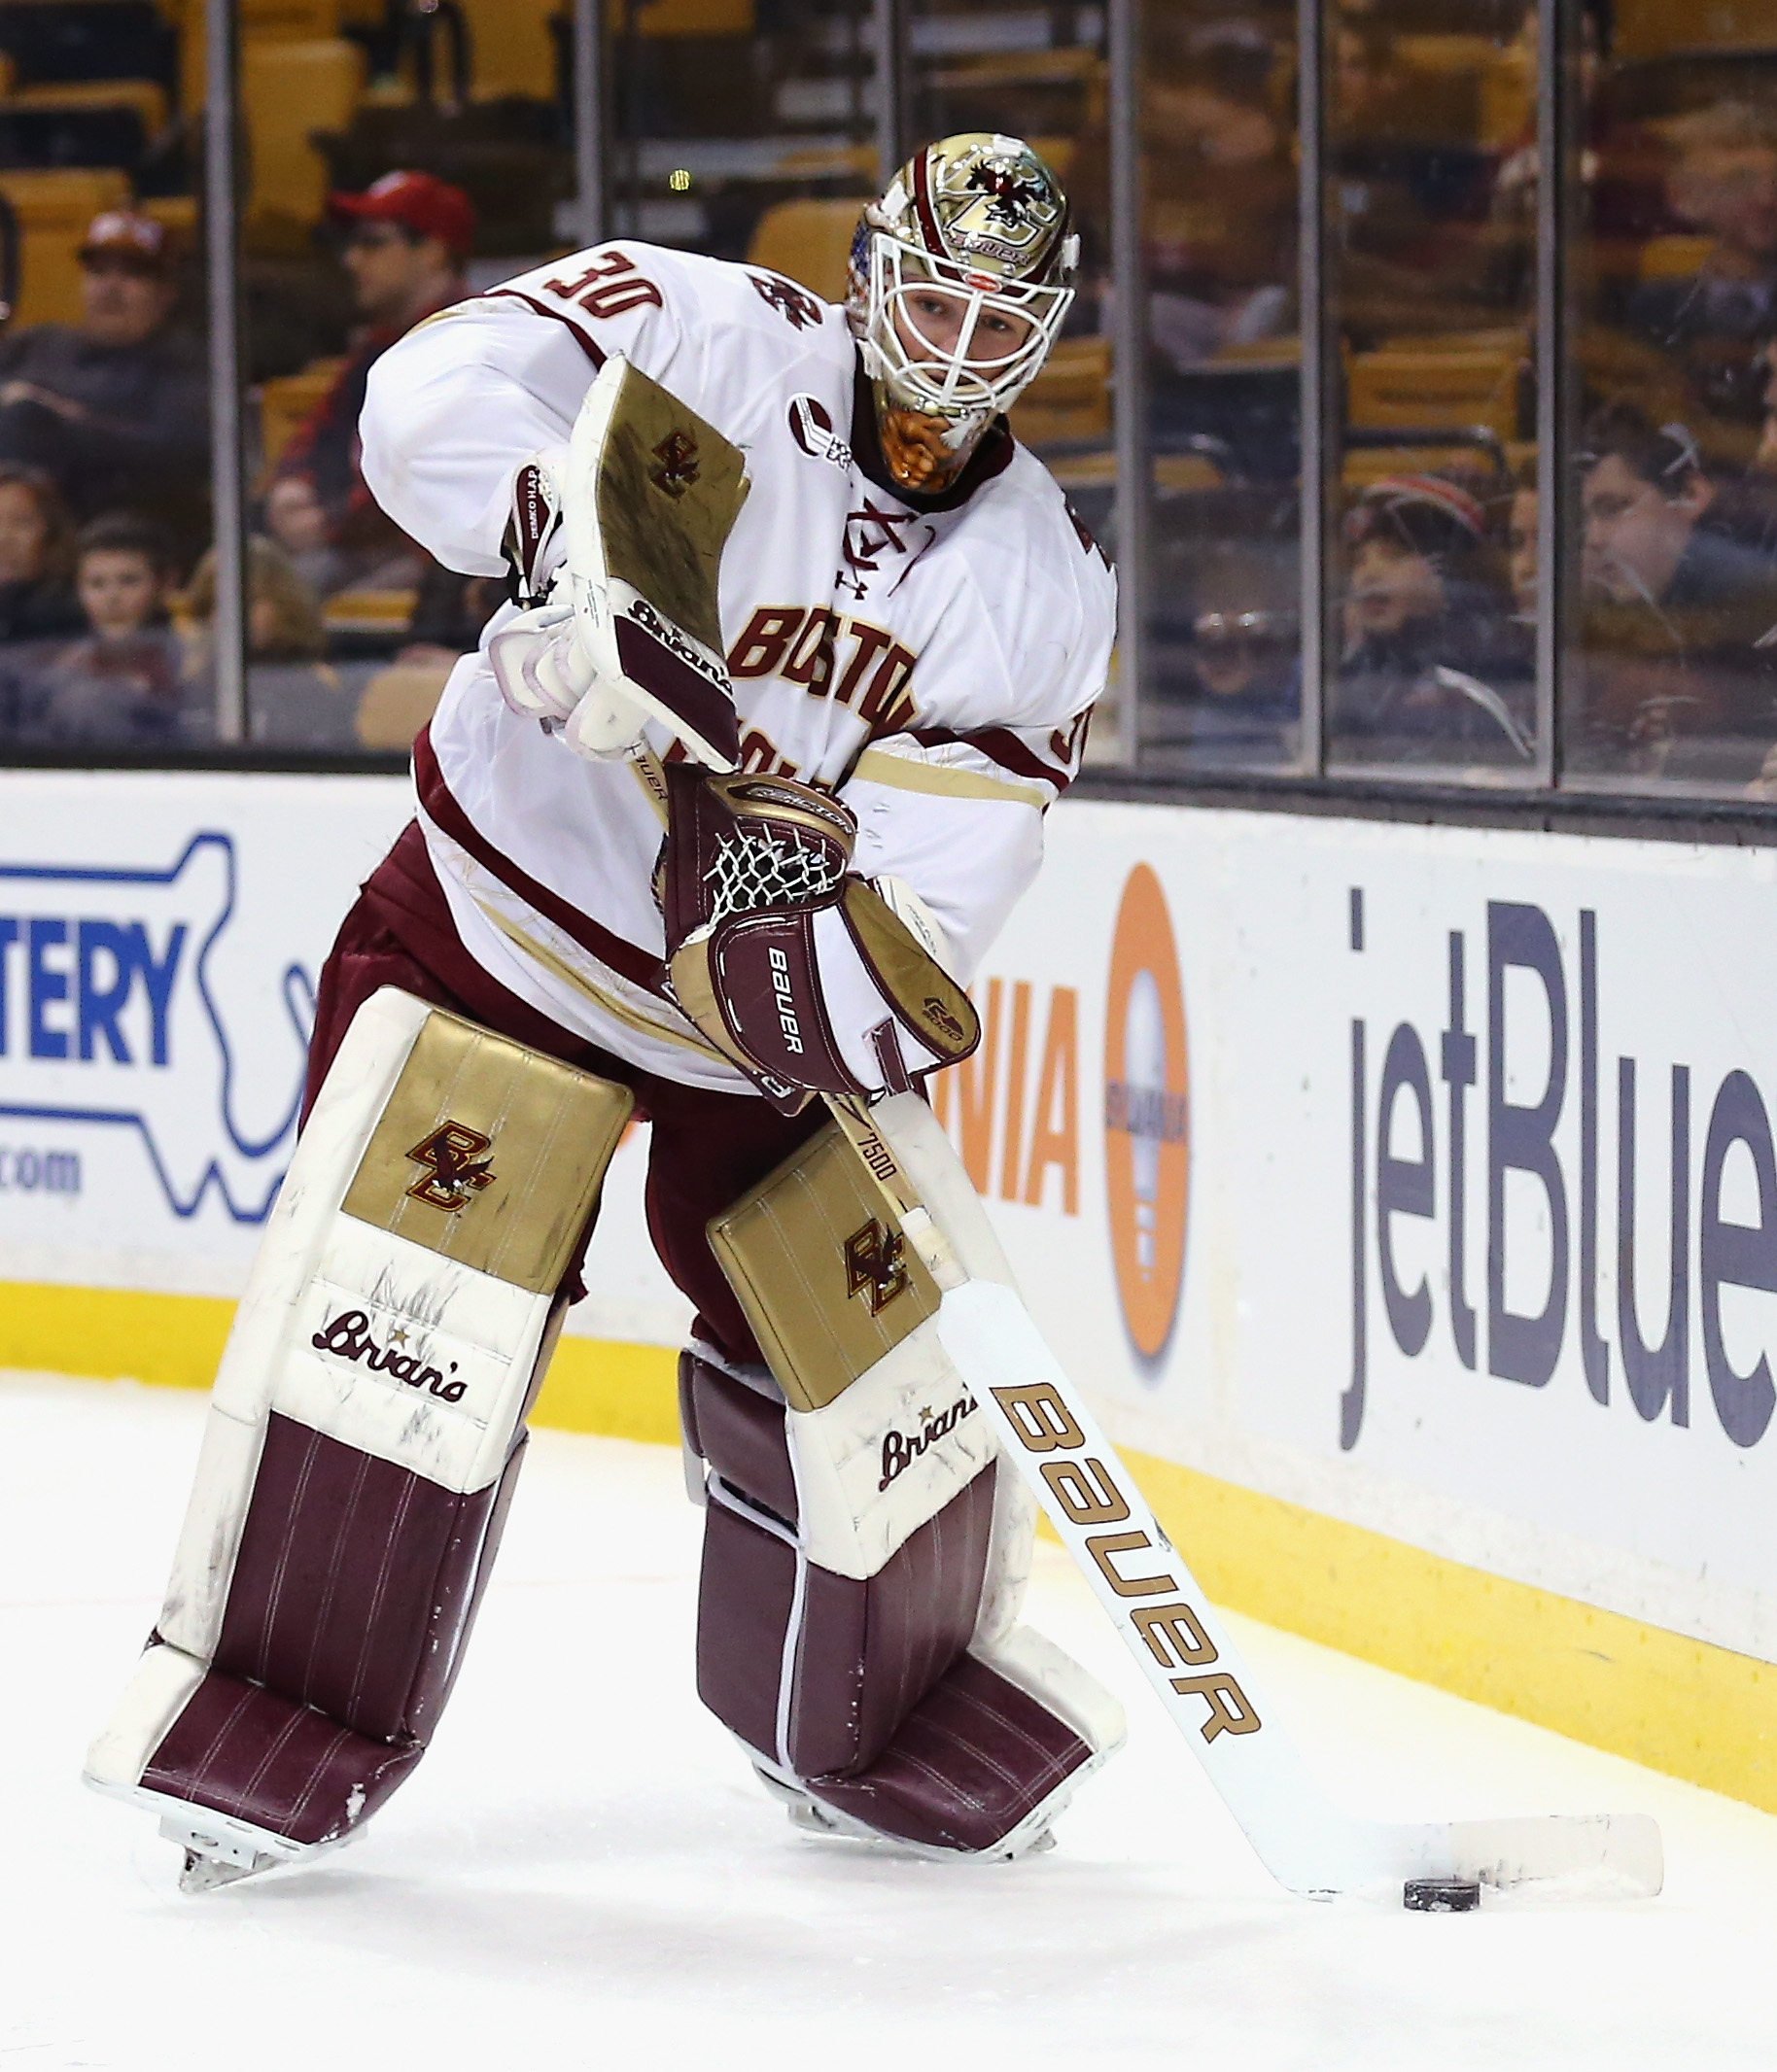 Hockey East: Demko, Fellow Juniors Lead BC To QF-opening Win